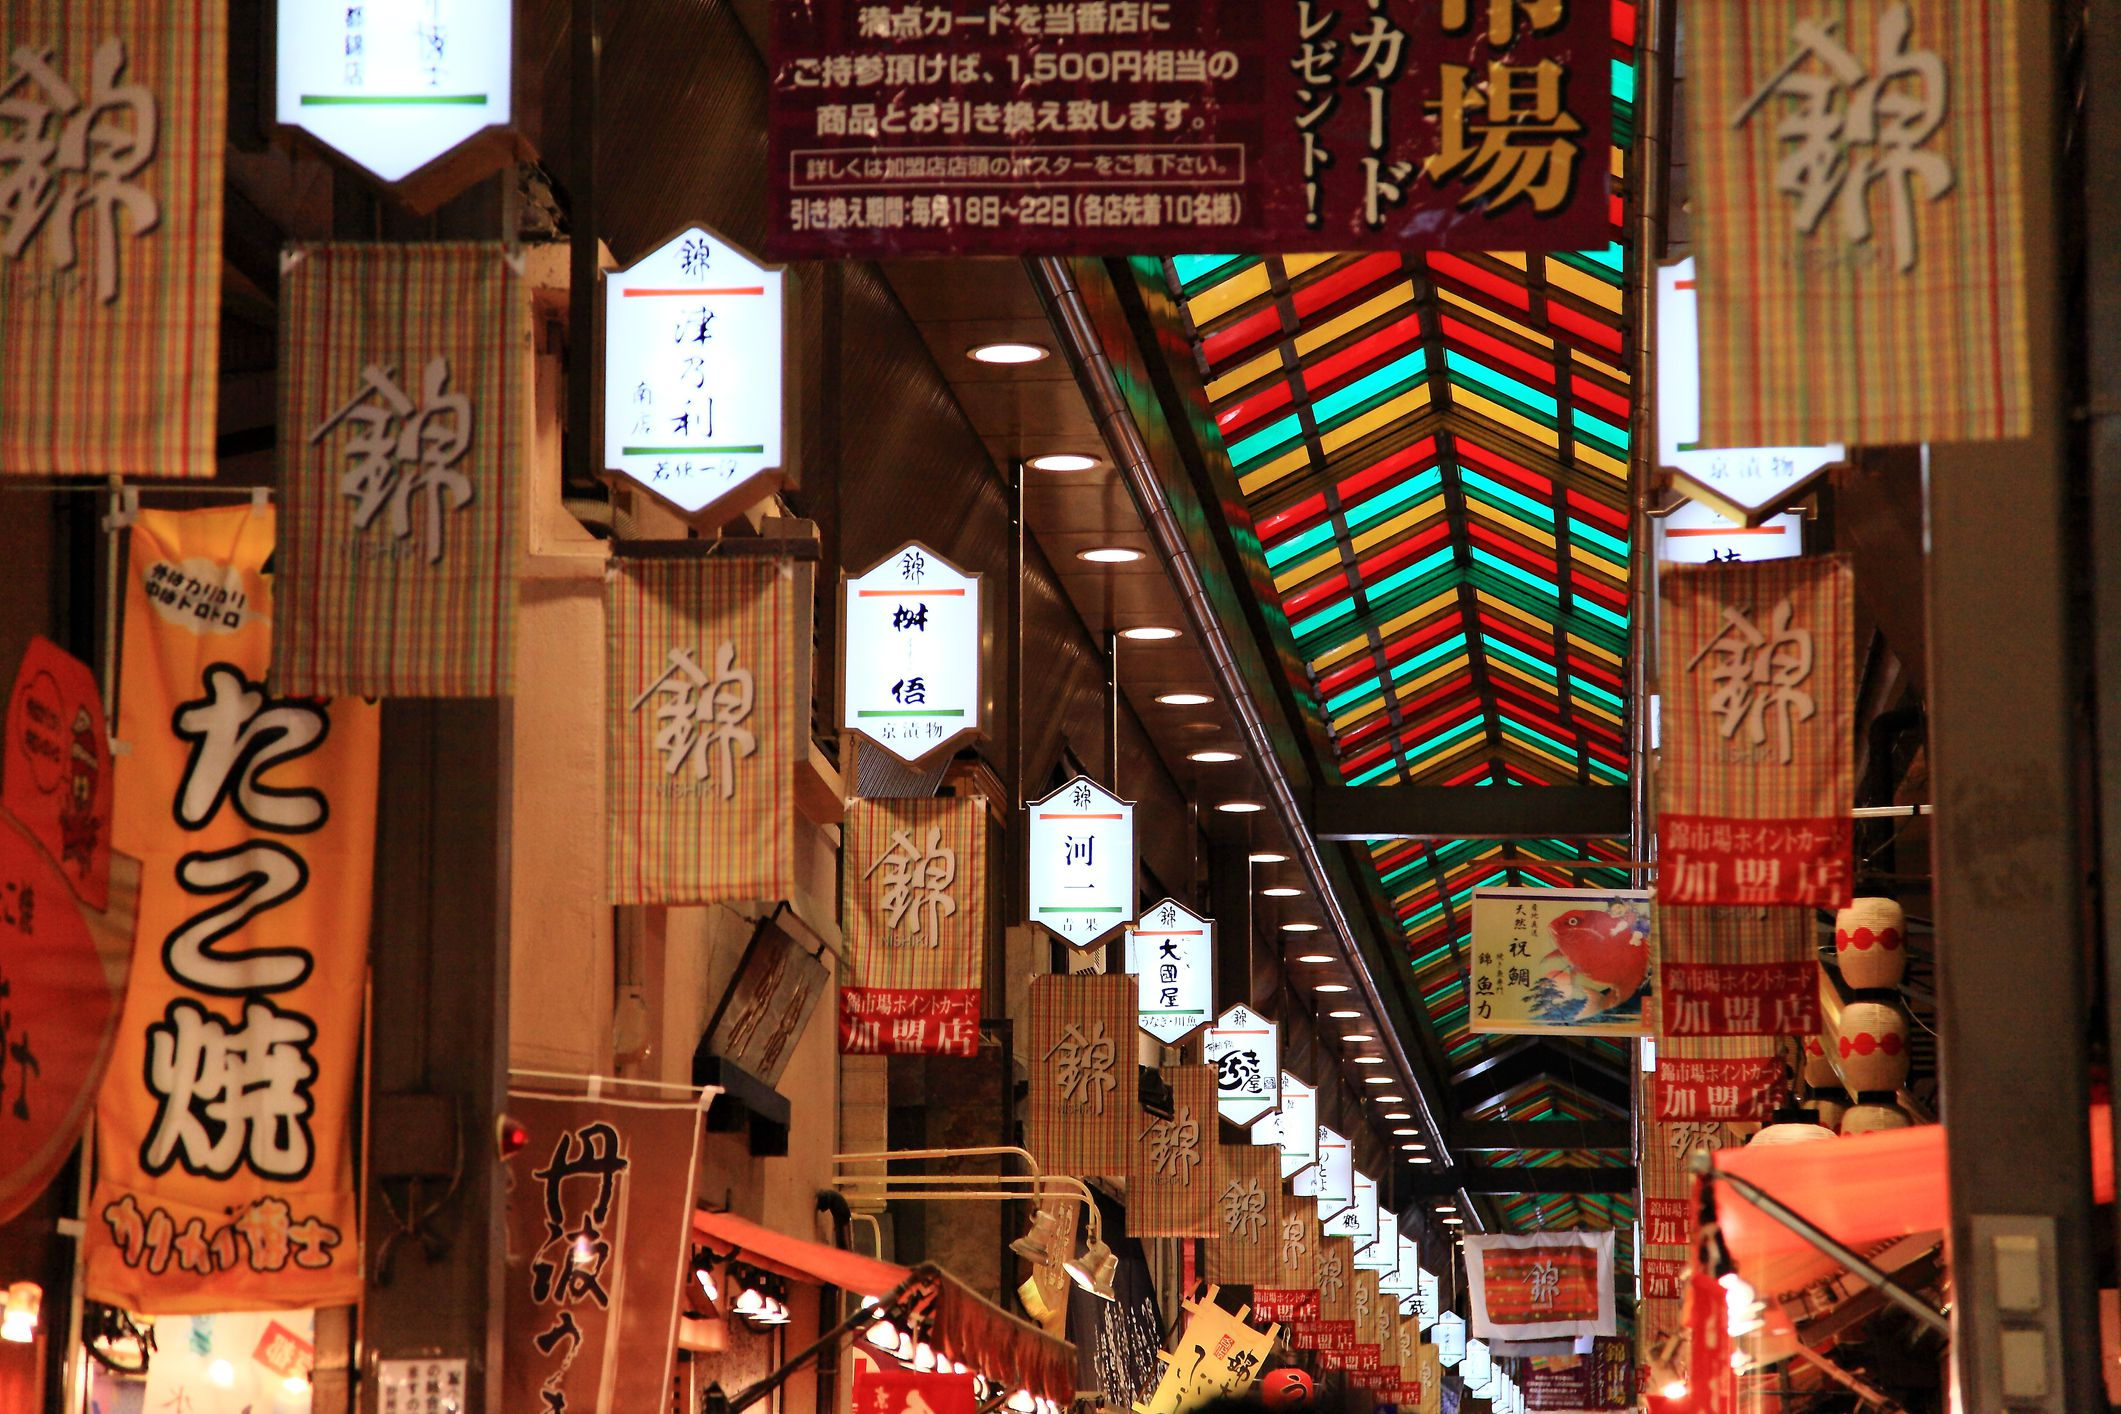 Kyoto's Nishiki Market: The Complete Guide